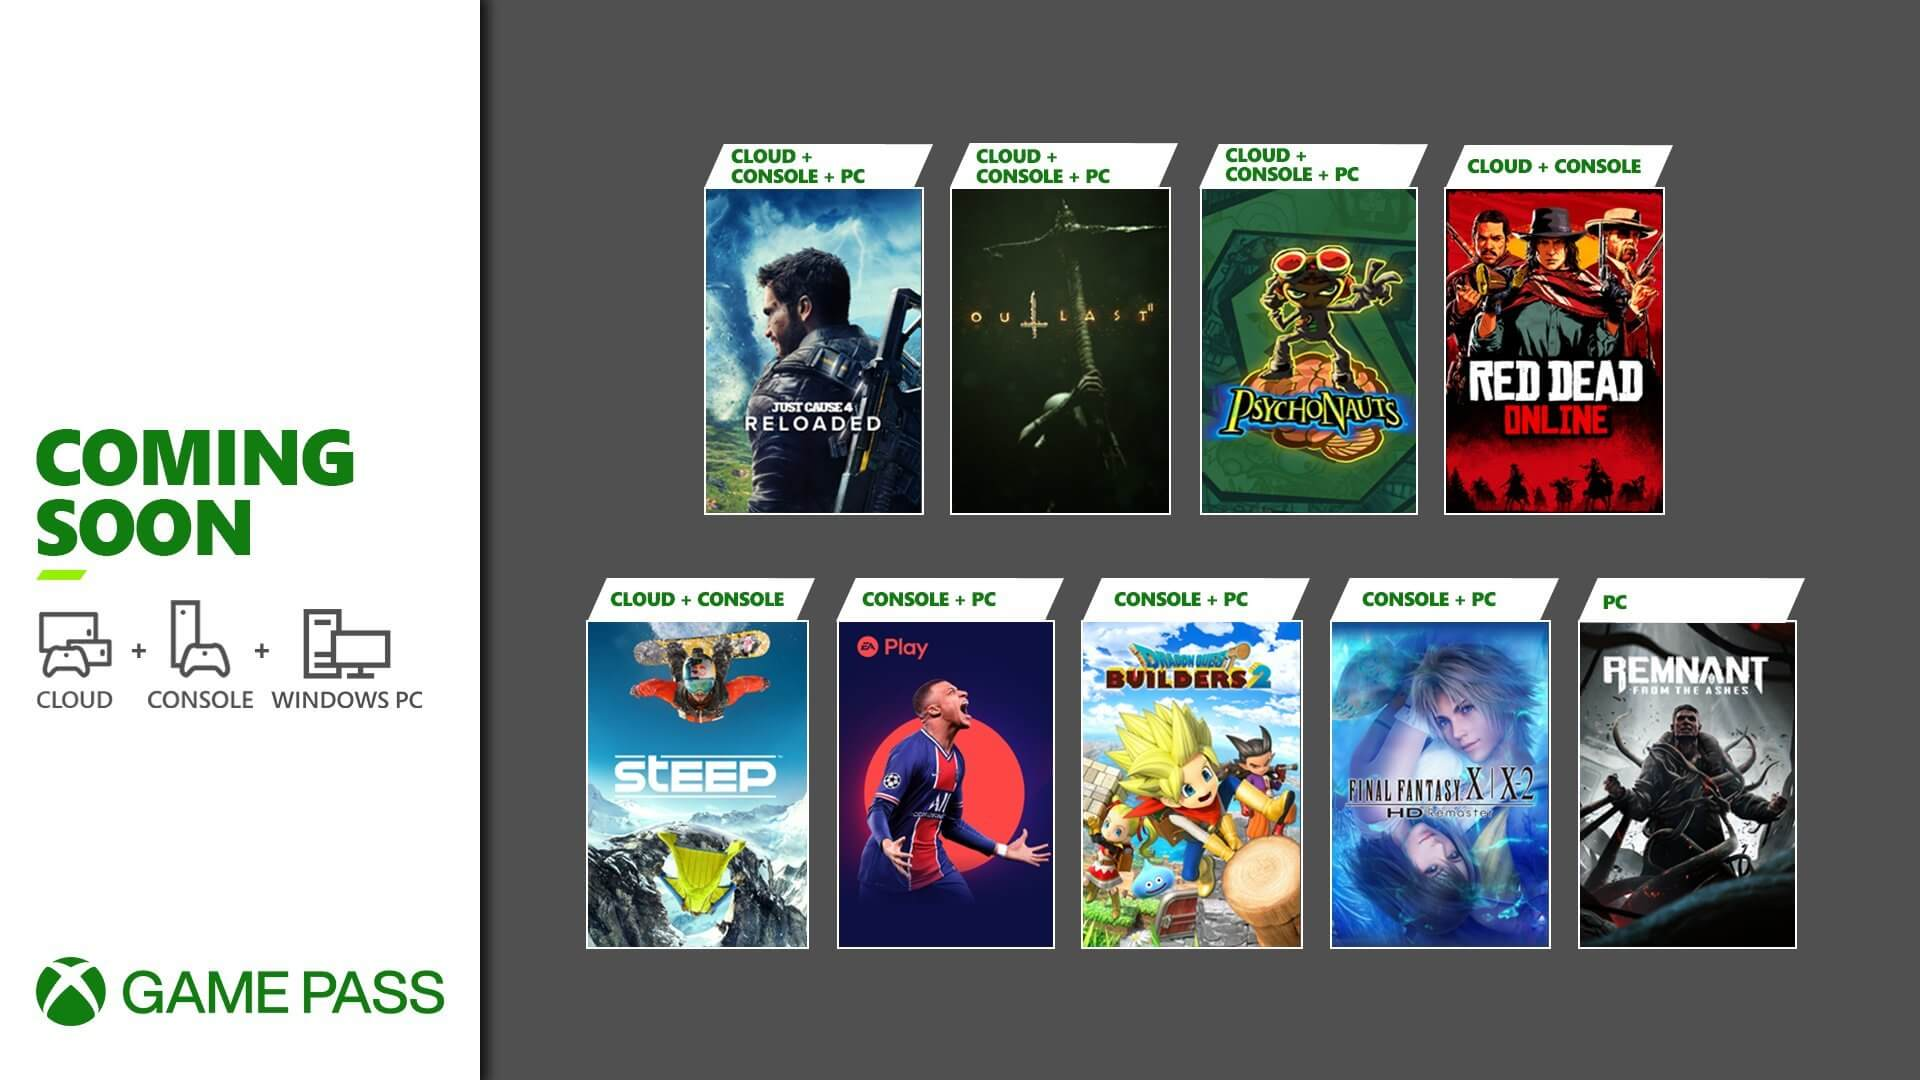 Xbox Game Pass Adding Red Dead Online, FIFA 21, and More This Month